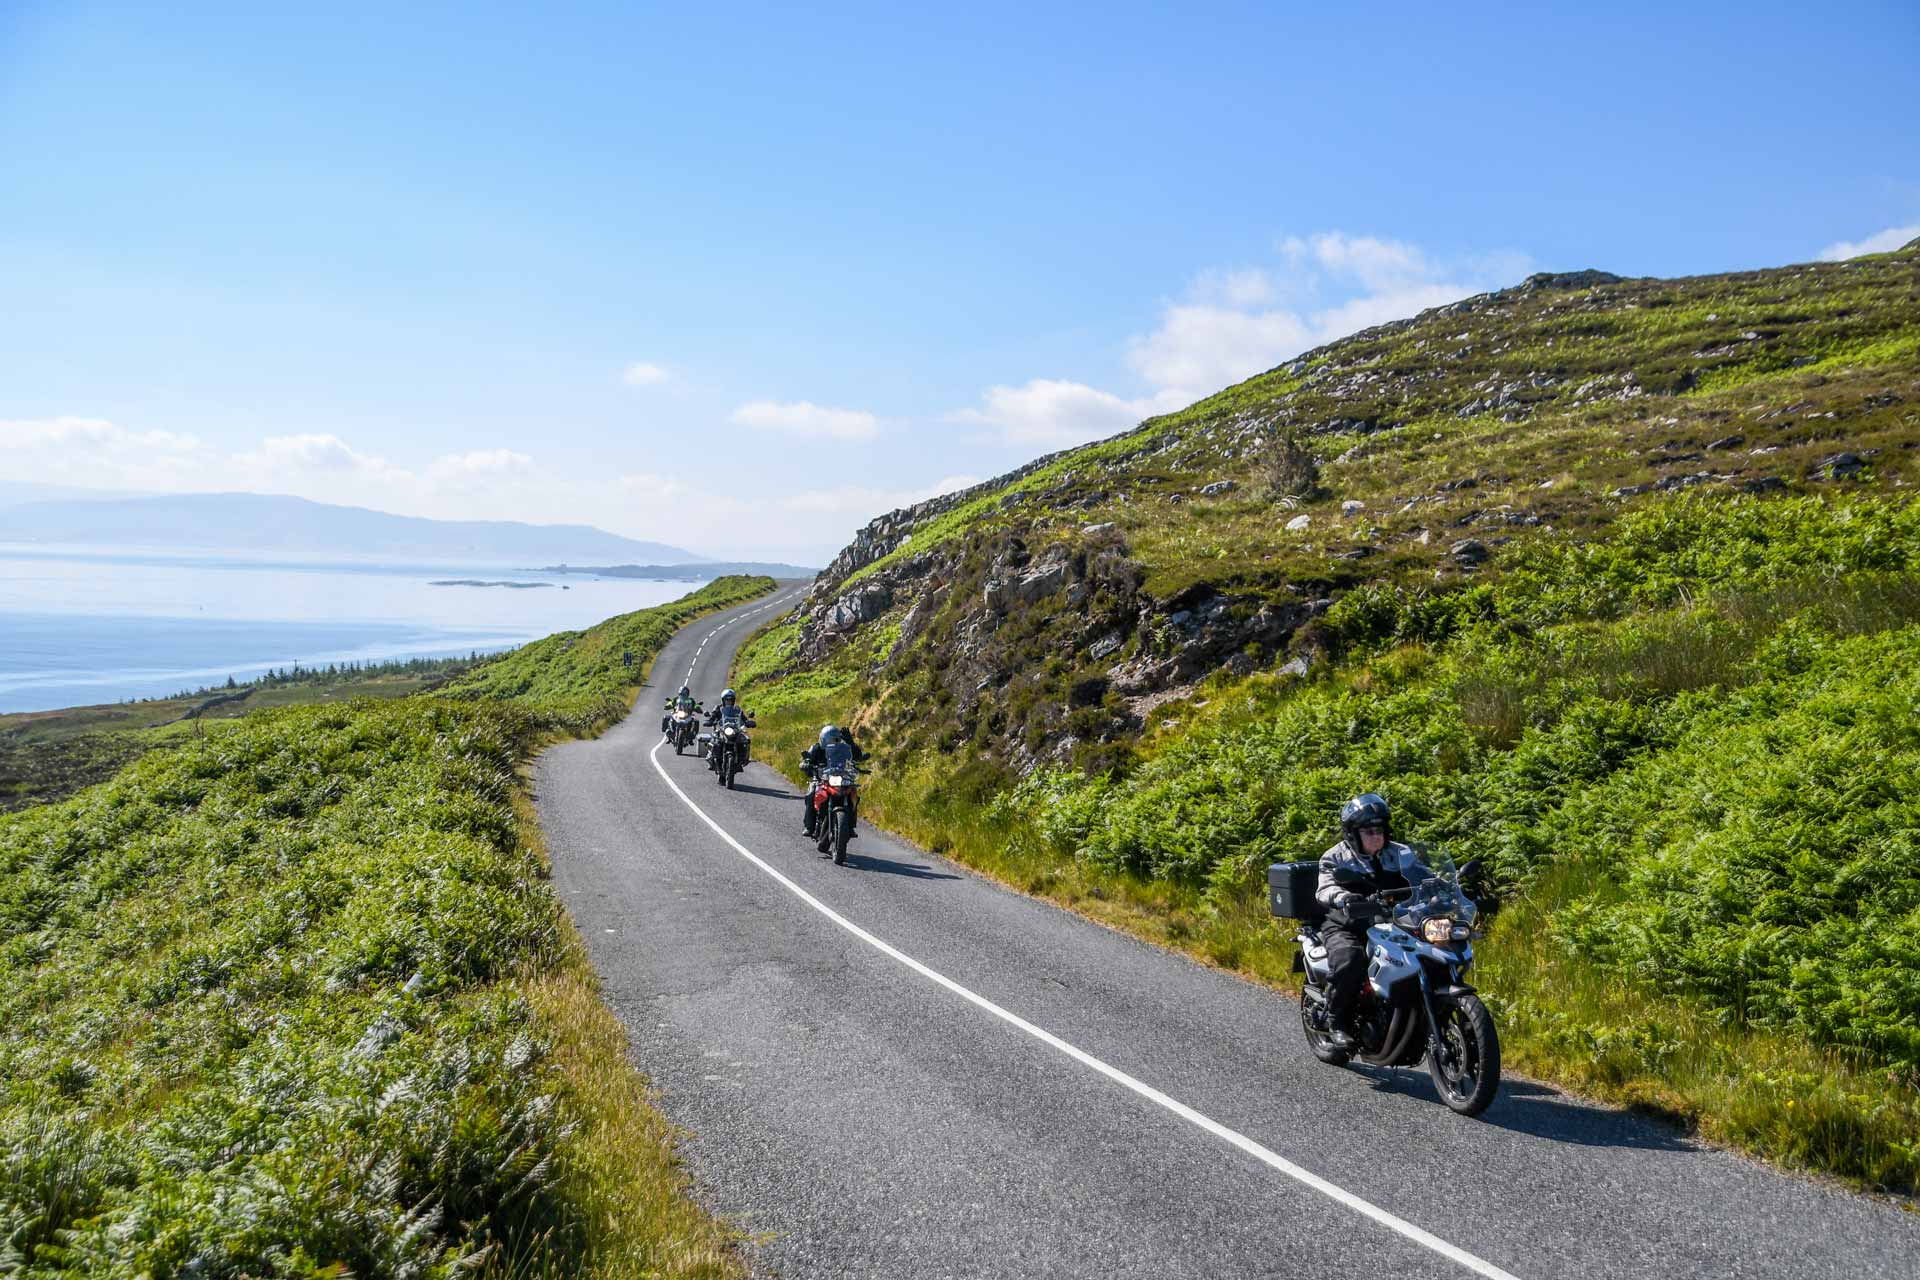 Motorcycle Tour in Ireland 2018 by Ayres Adventures, Day 4 - Derry to Donegal